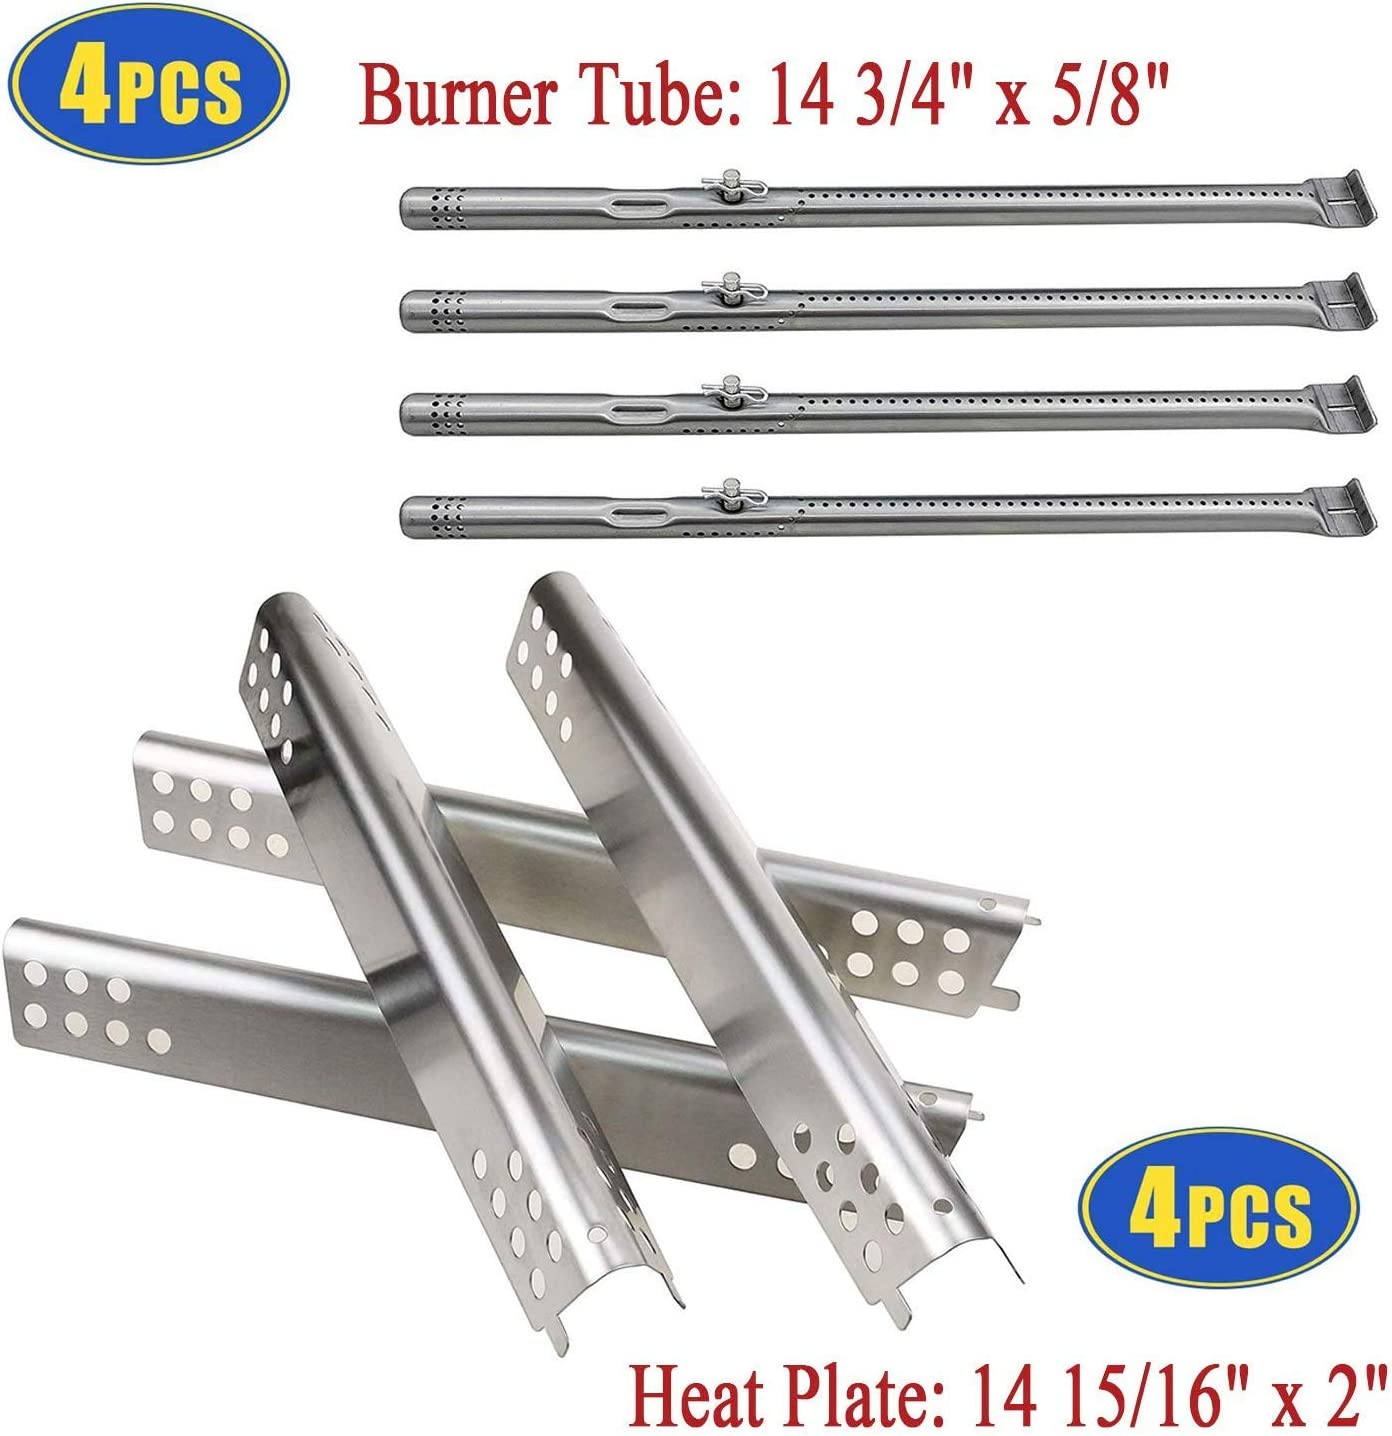 Grill Replacement Parts for Char Broil 463344015, 463343015, 463433016, Stainless Pipe Burner, Heat Plate Tent Shield for Charbroil Advantage 4 Burner 463240115, 463240015 Gas Grills